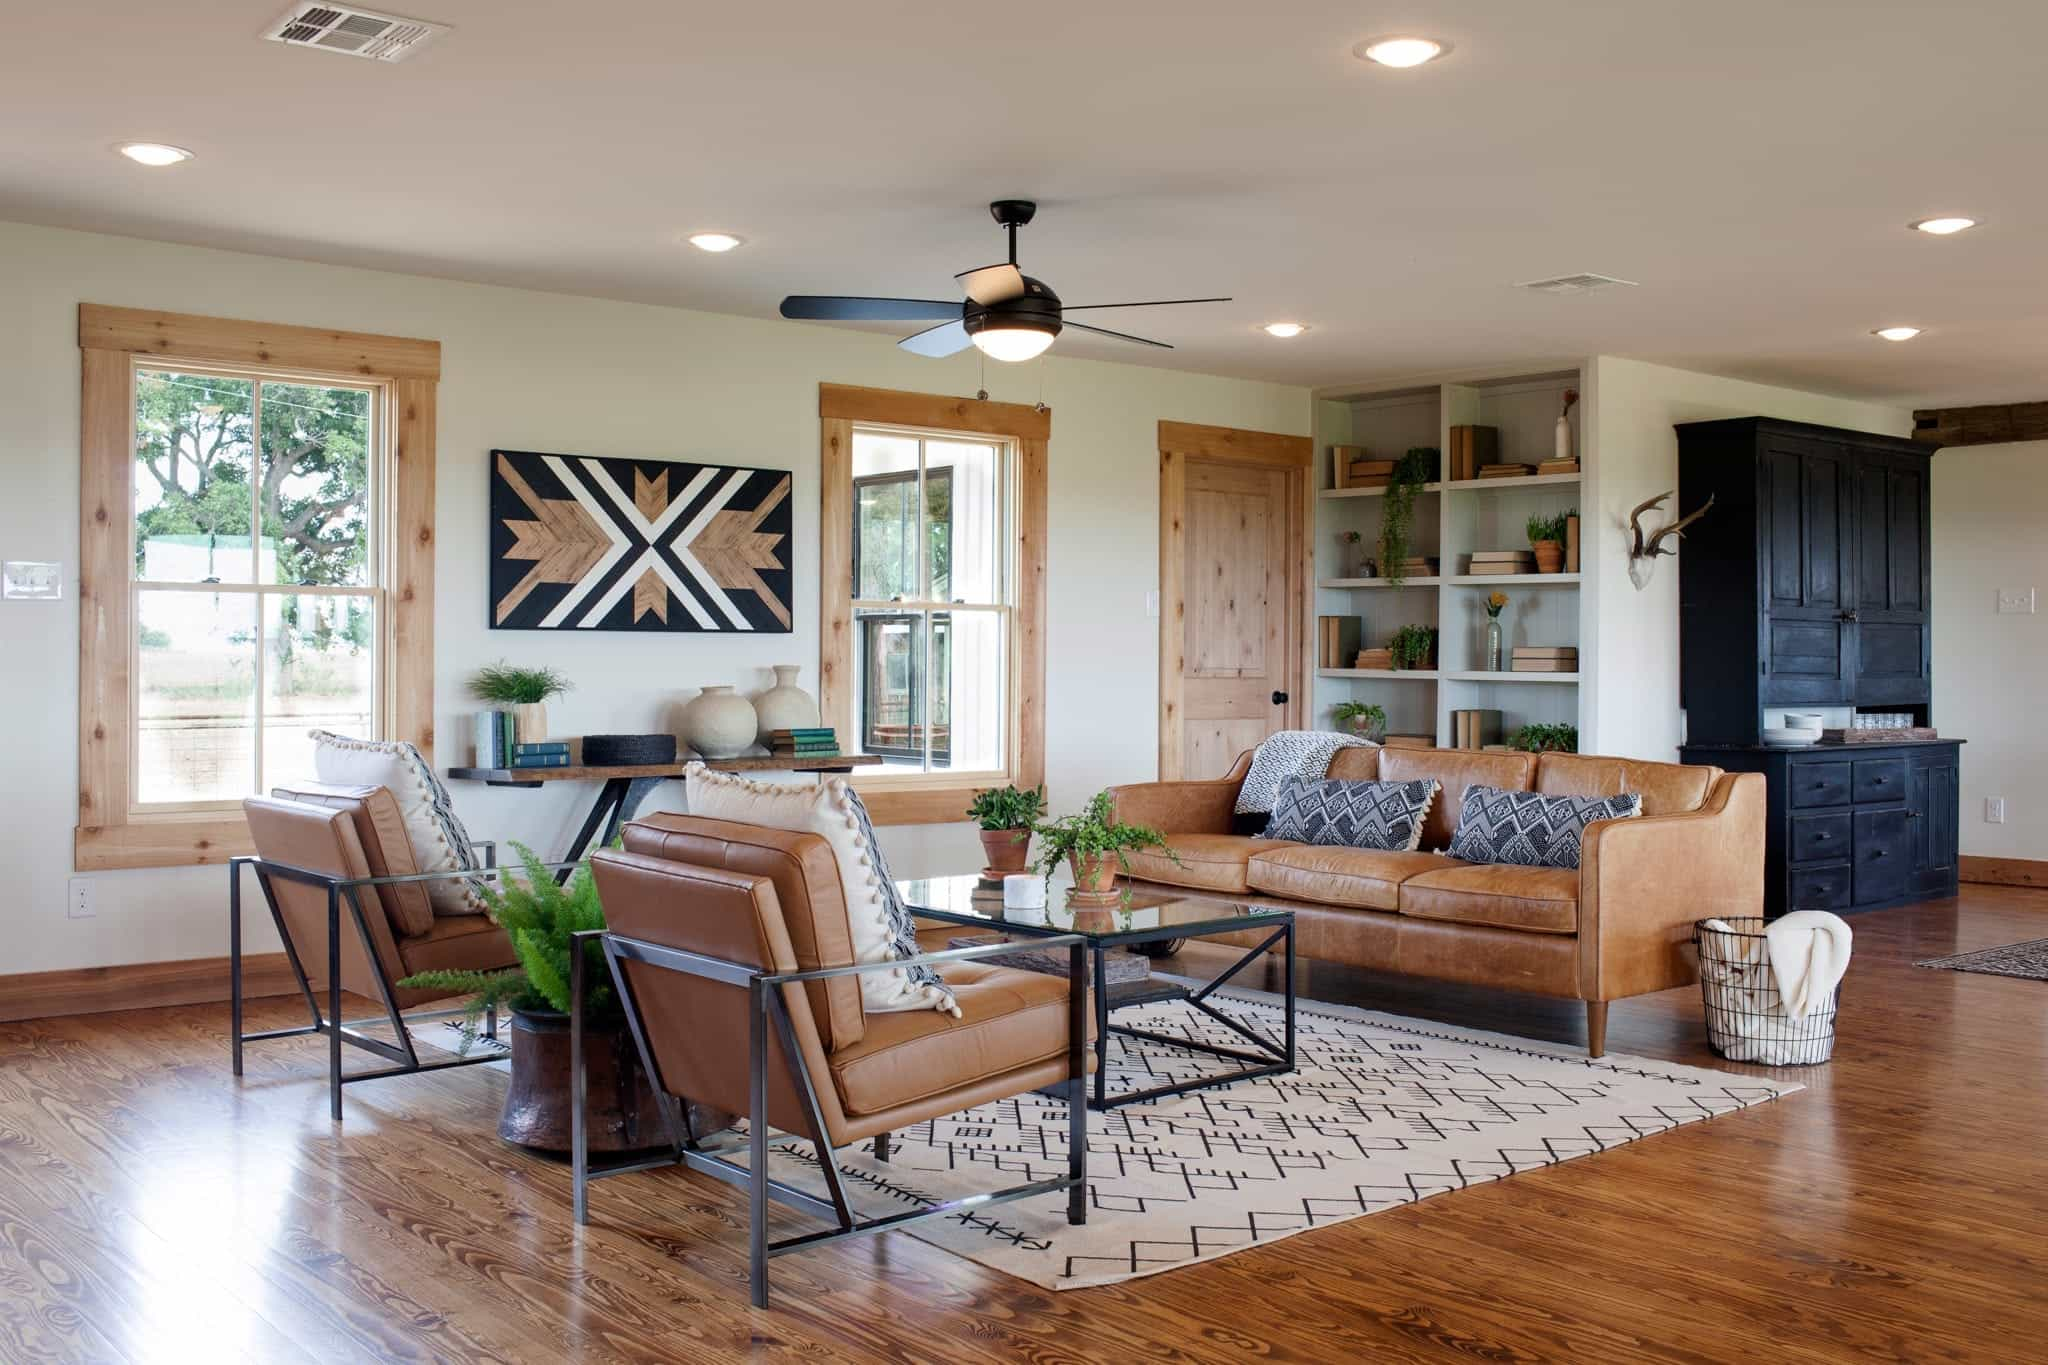 Wood Floors And Graphic Carpet Add Brightness To Living Room (View 5 of 13)